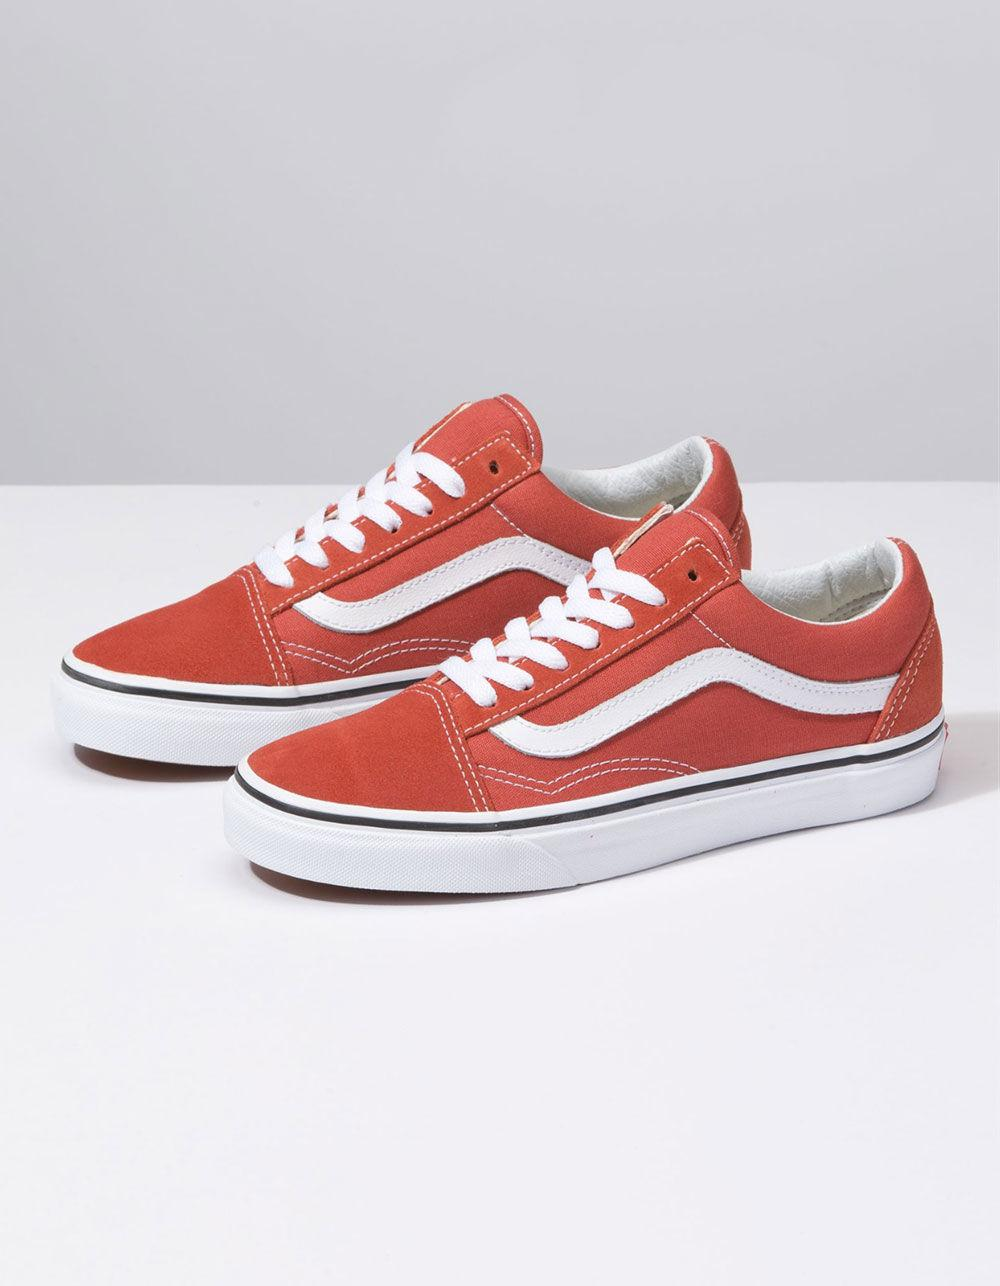 20a93d9f2108 Lyst - Vans Old Skool Shoes (trainers) in White - Save 56%